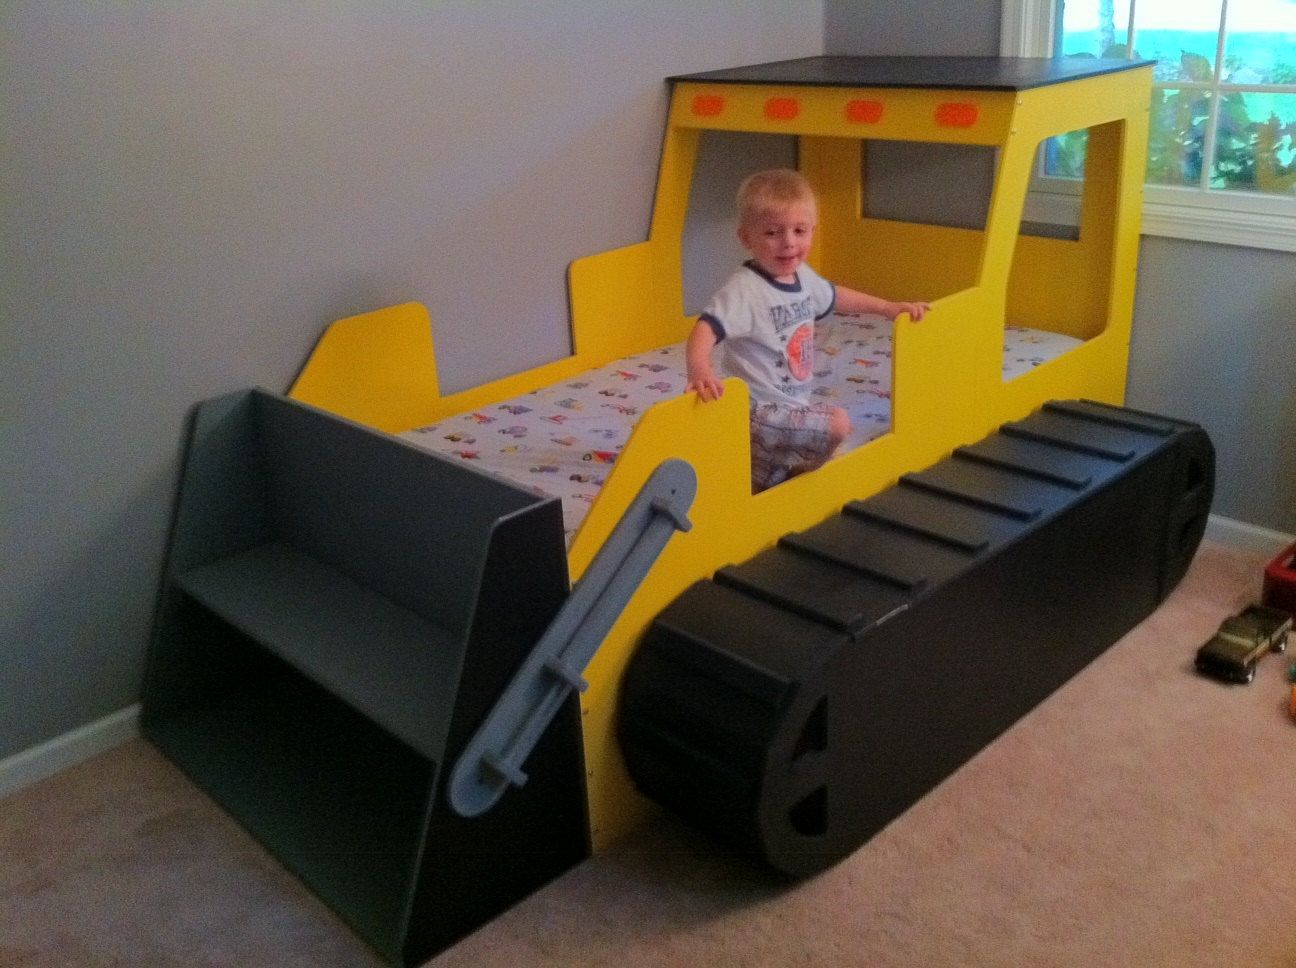 Car beds for boys full size - Rough And Rugged Bull Dozer Dozer Construction Themed Childrens Bed Twin Size Playbed With Toy Bin Crawler Track Full Size Available